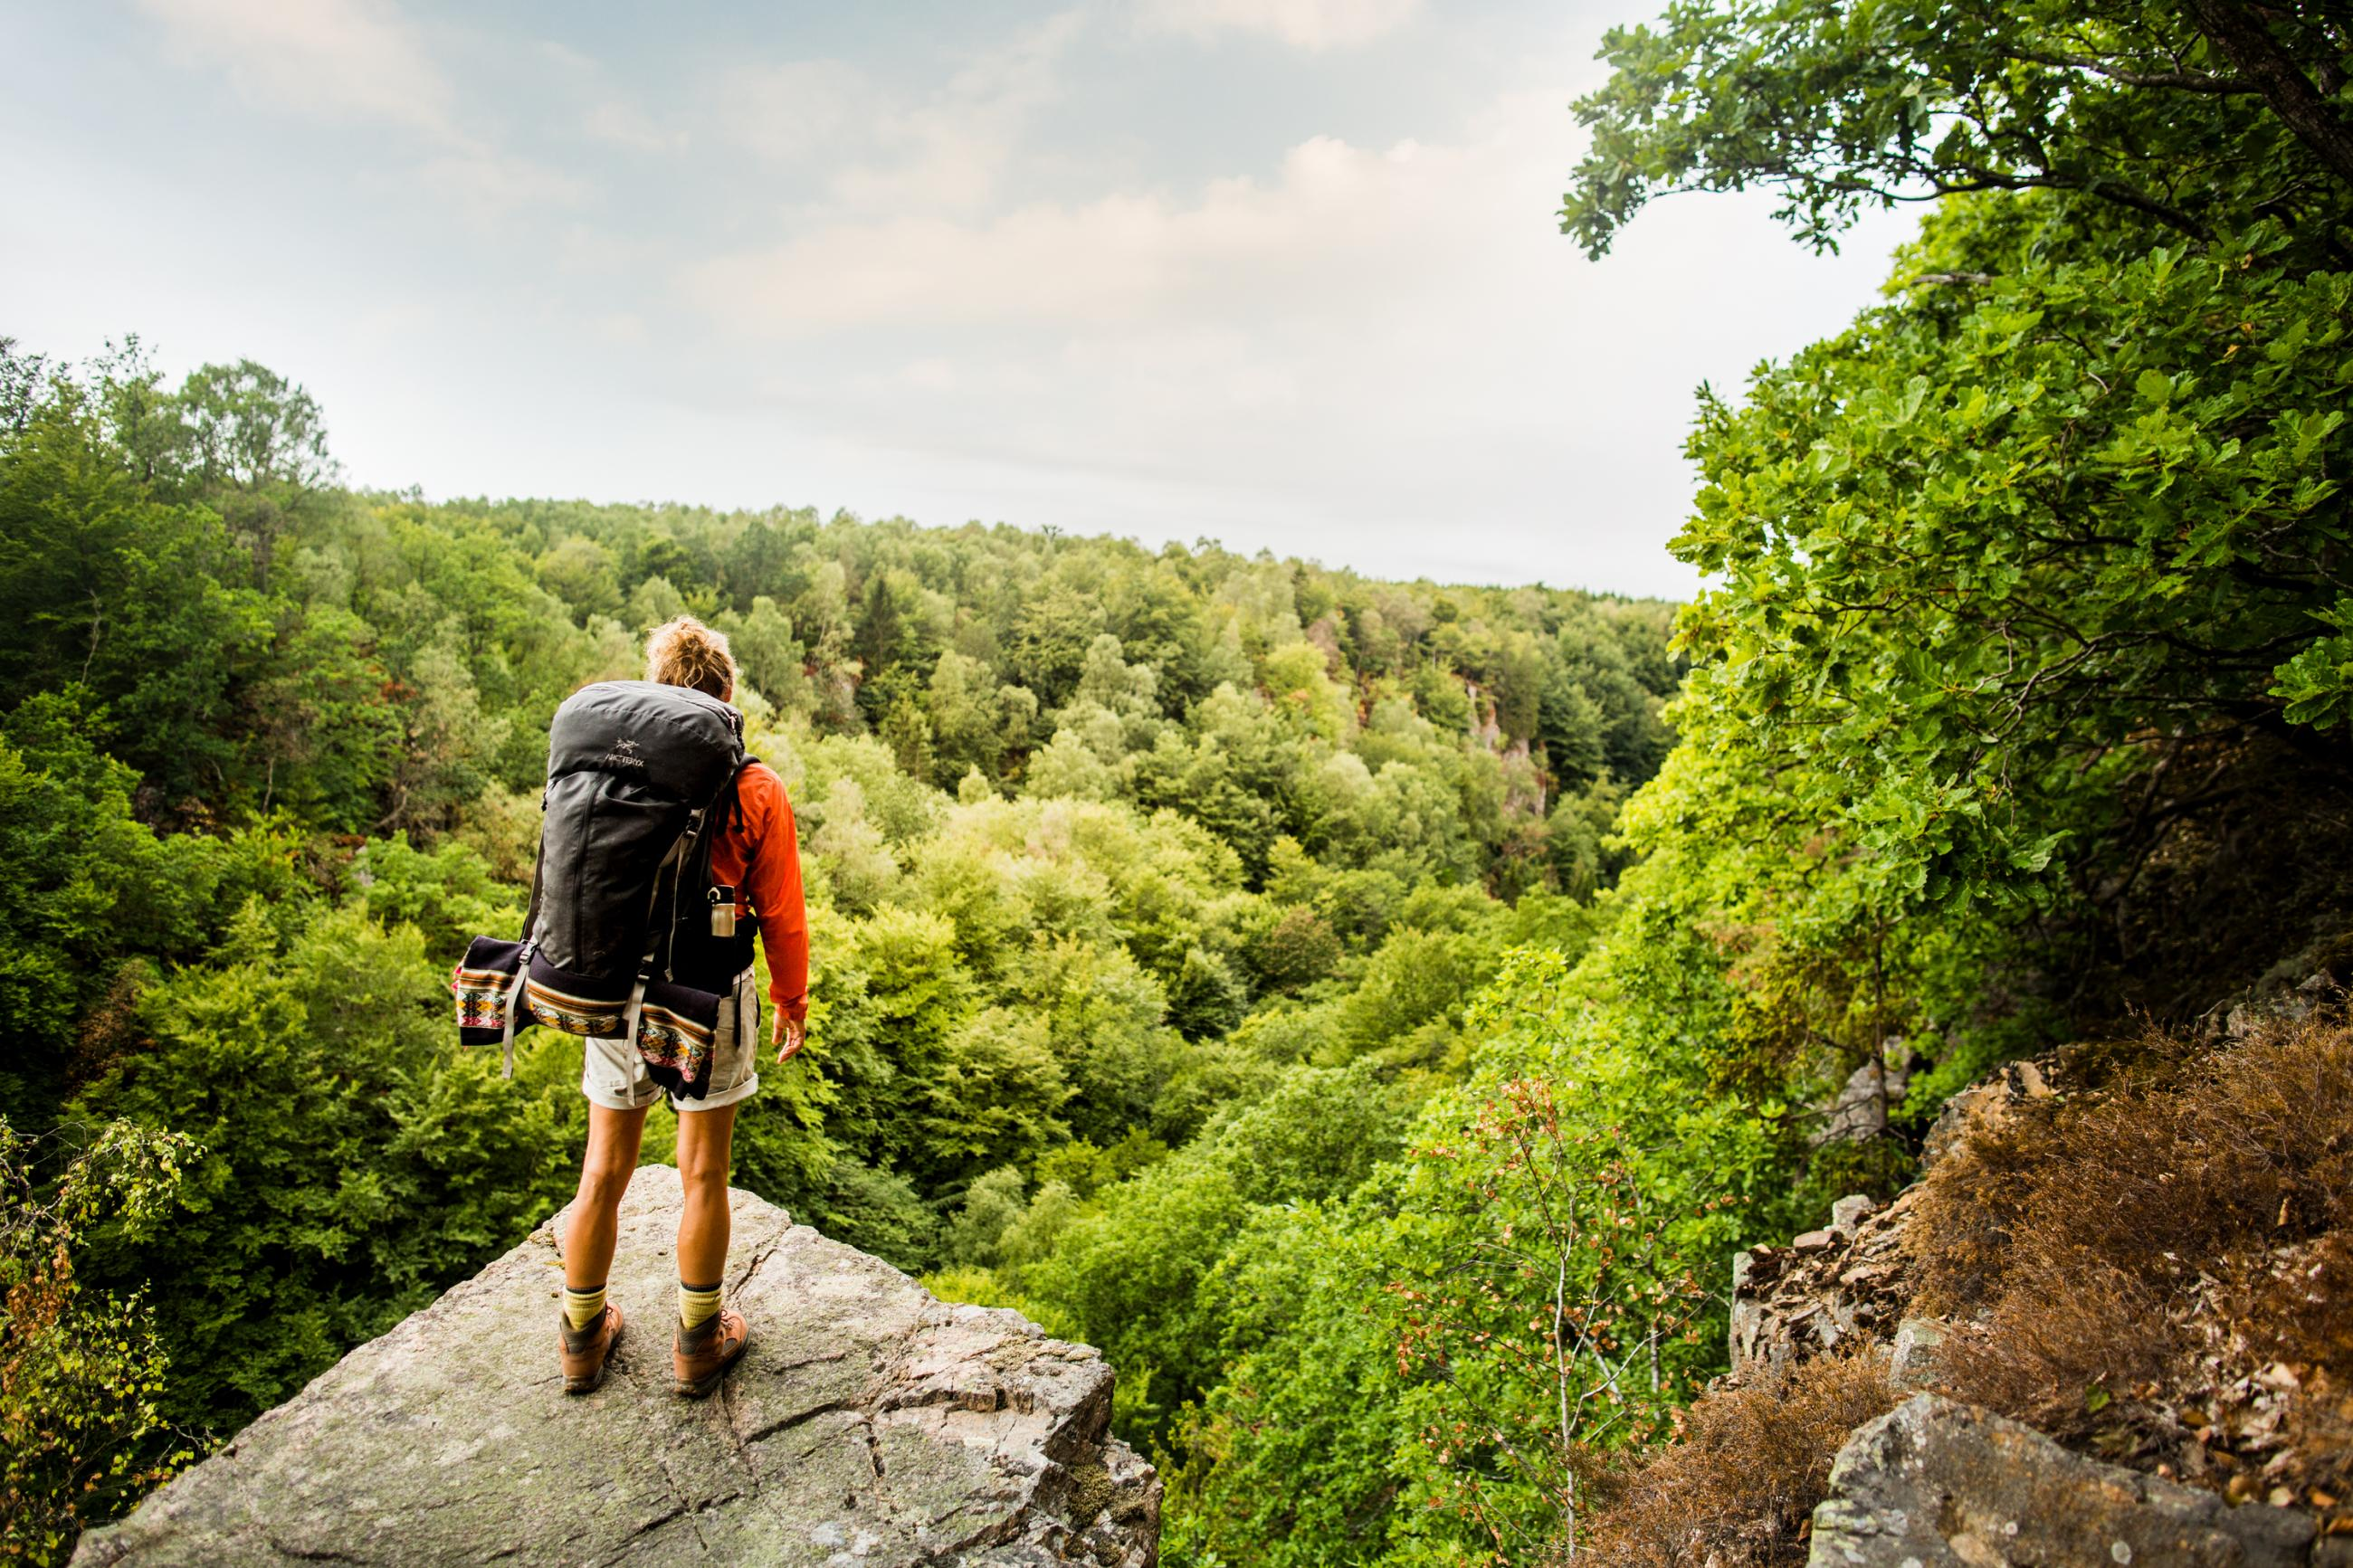 Man standing high up on a rock and looks out at the expanses of green nature